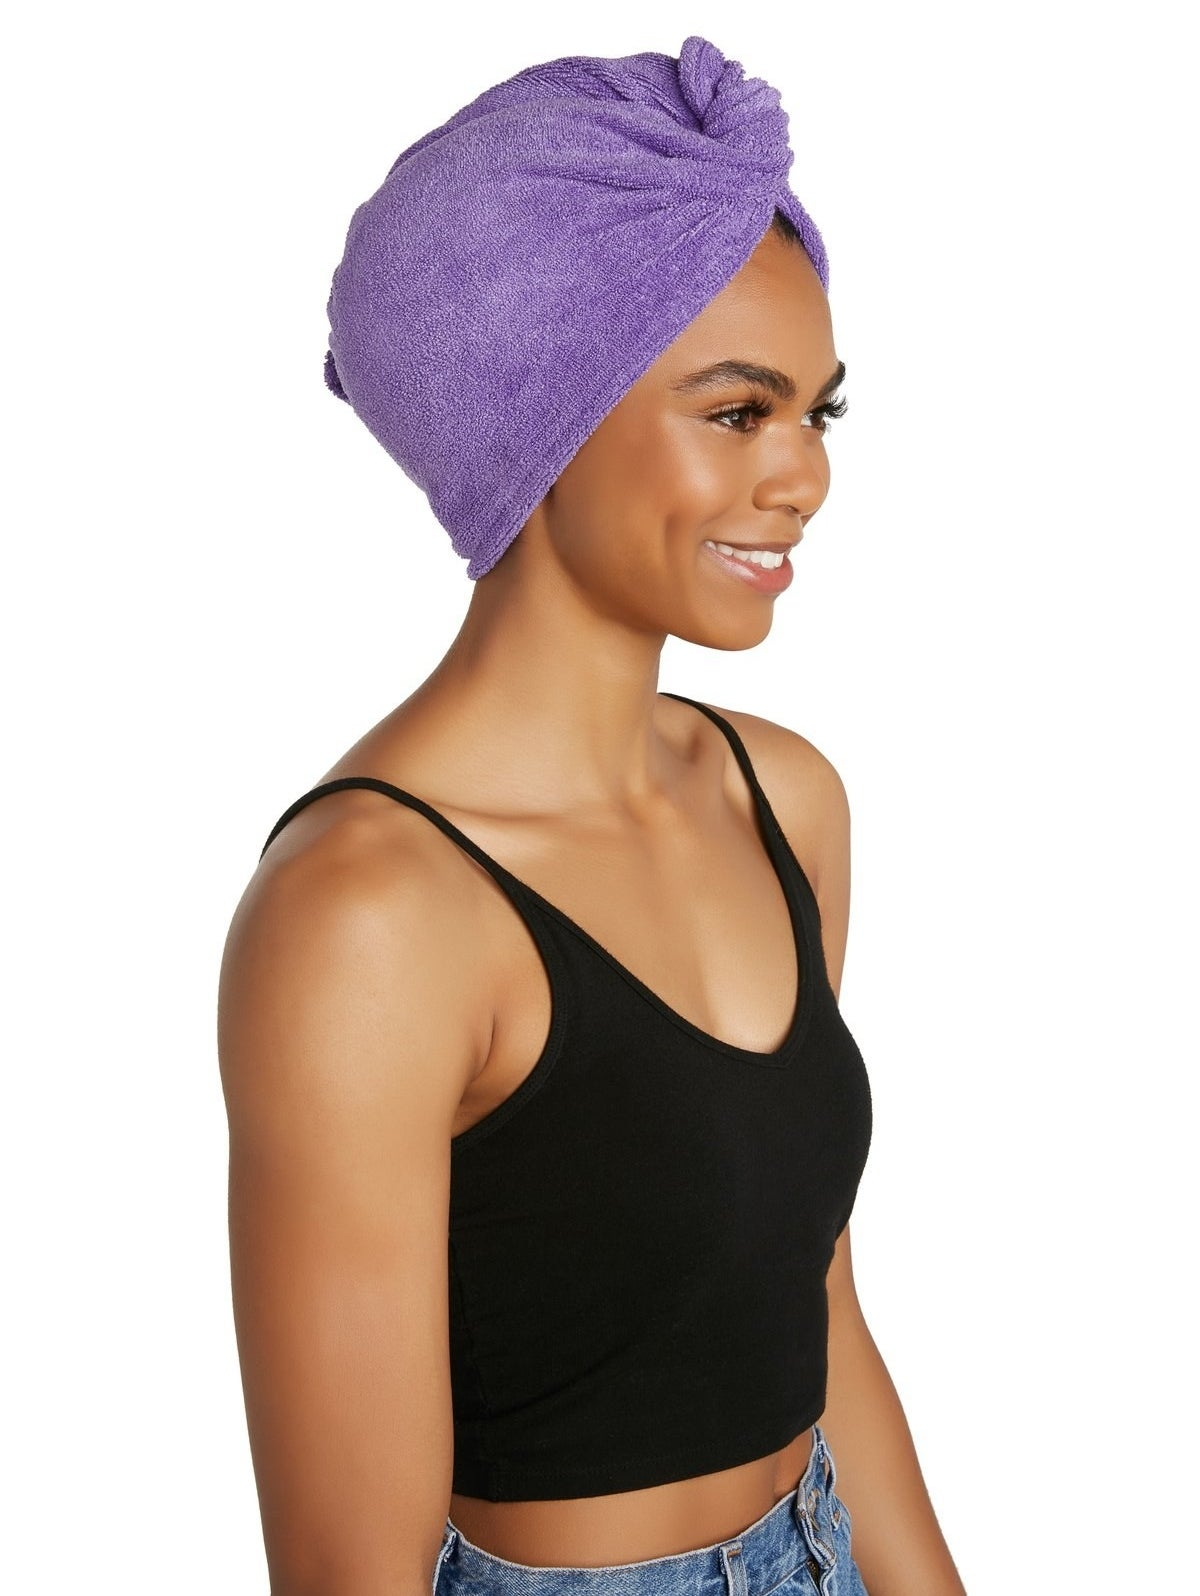 person wearing the turbie twist on head while wearing clothes